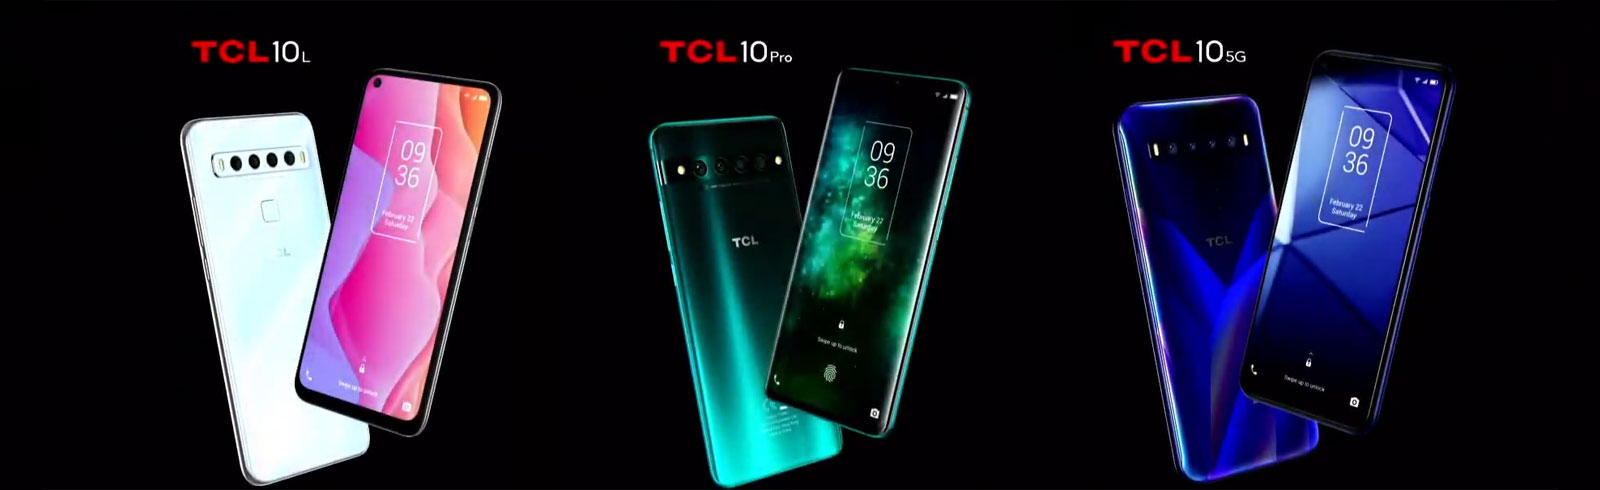 TCL 10L, TCL 10 Pro, TCL 10 5G and TCL Foldable are teased with 64MP cameras, will be announced at MWC 2020